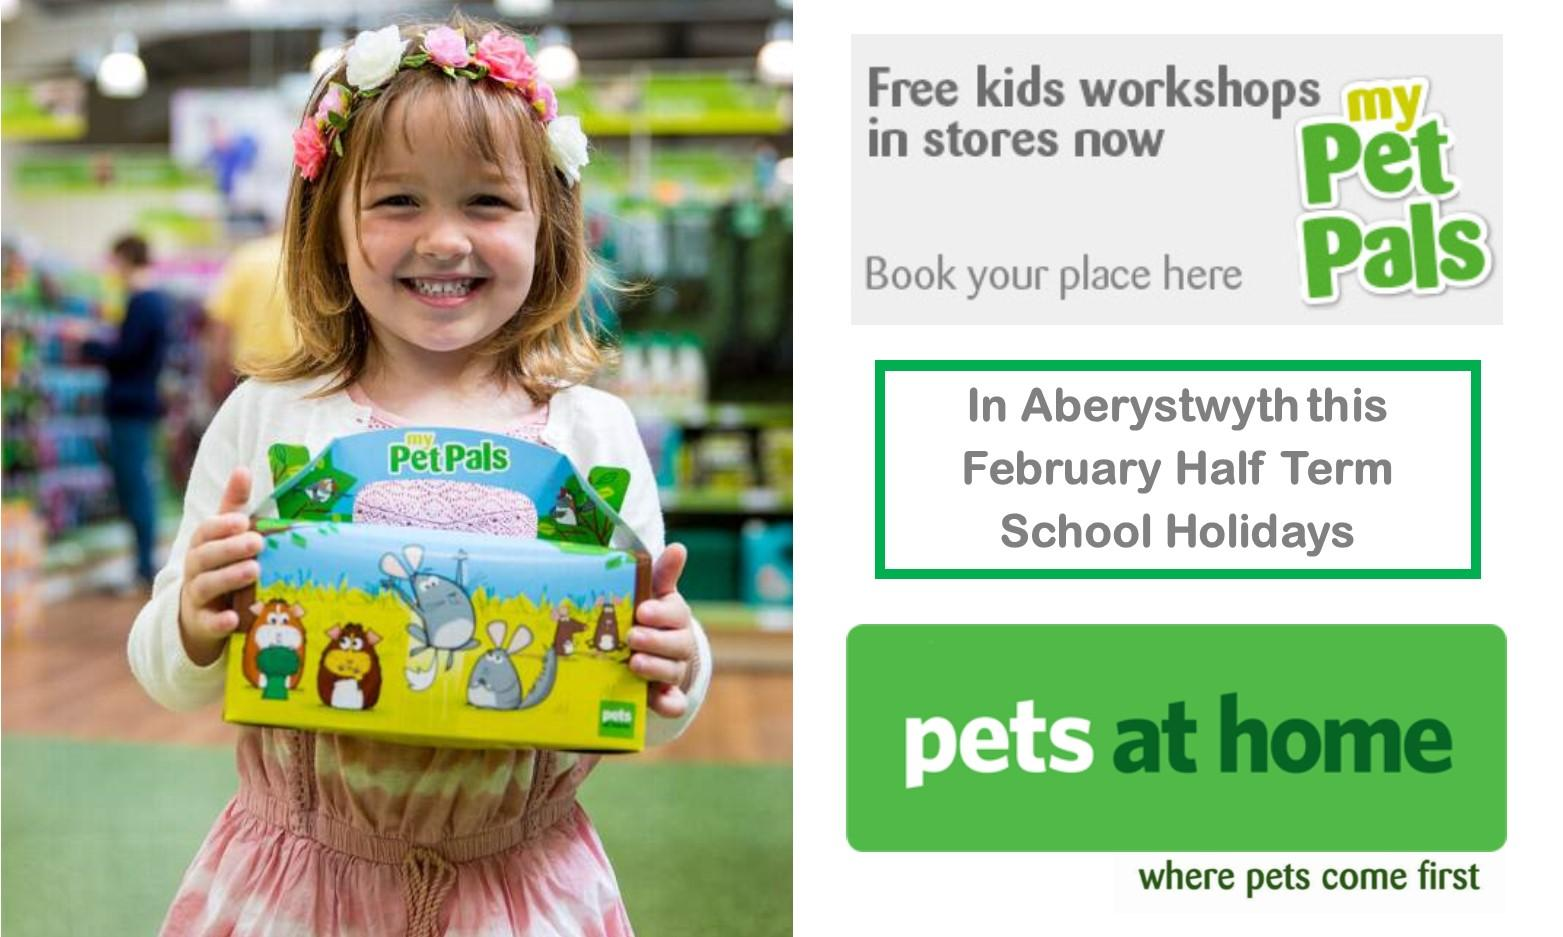 Super Small Furries Pets at Home Workshop in Aberystwyth